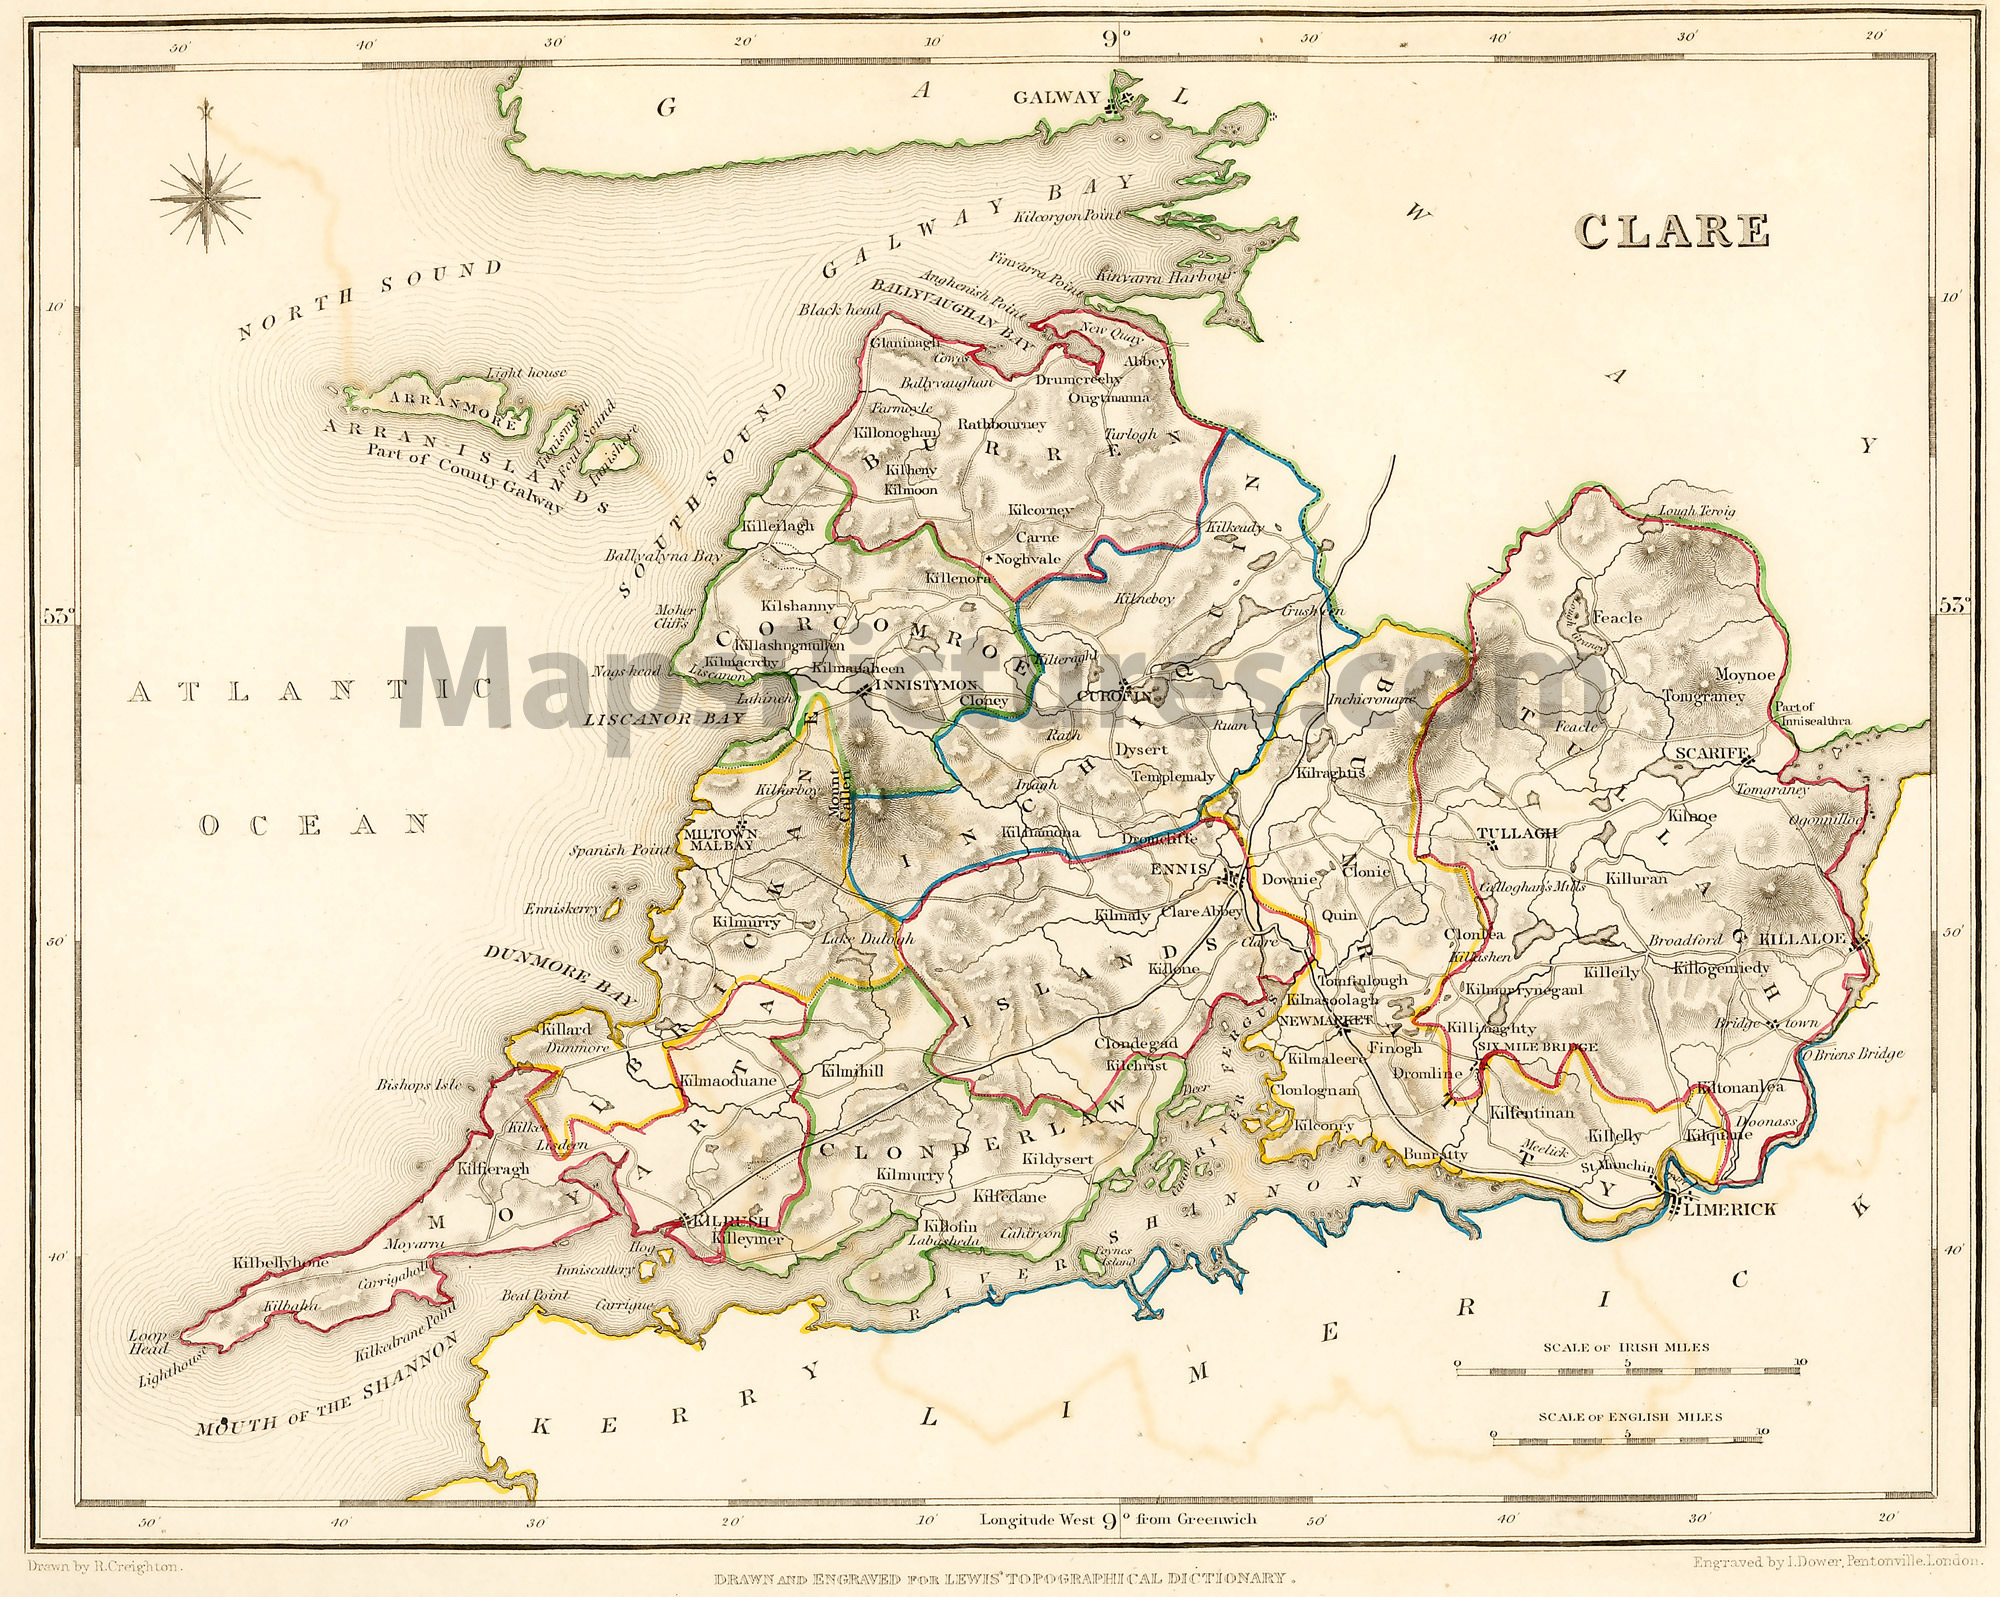 County Clare Ireland Map 1837